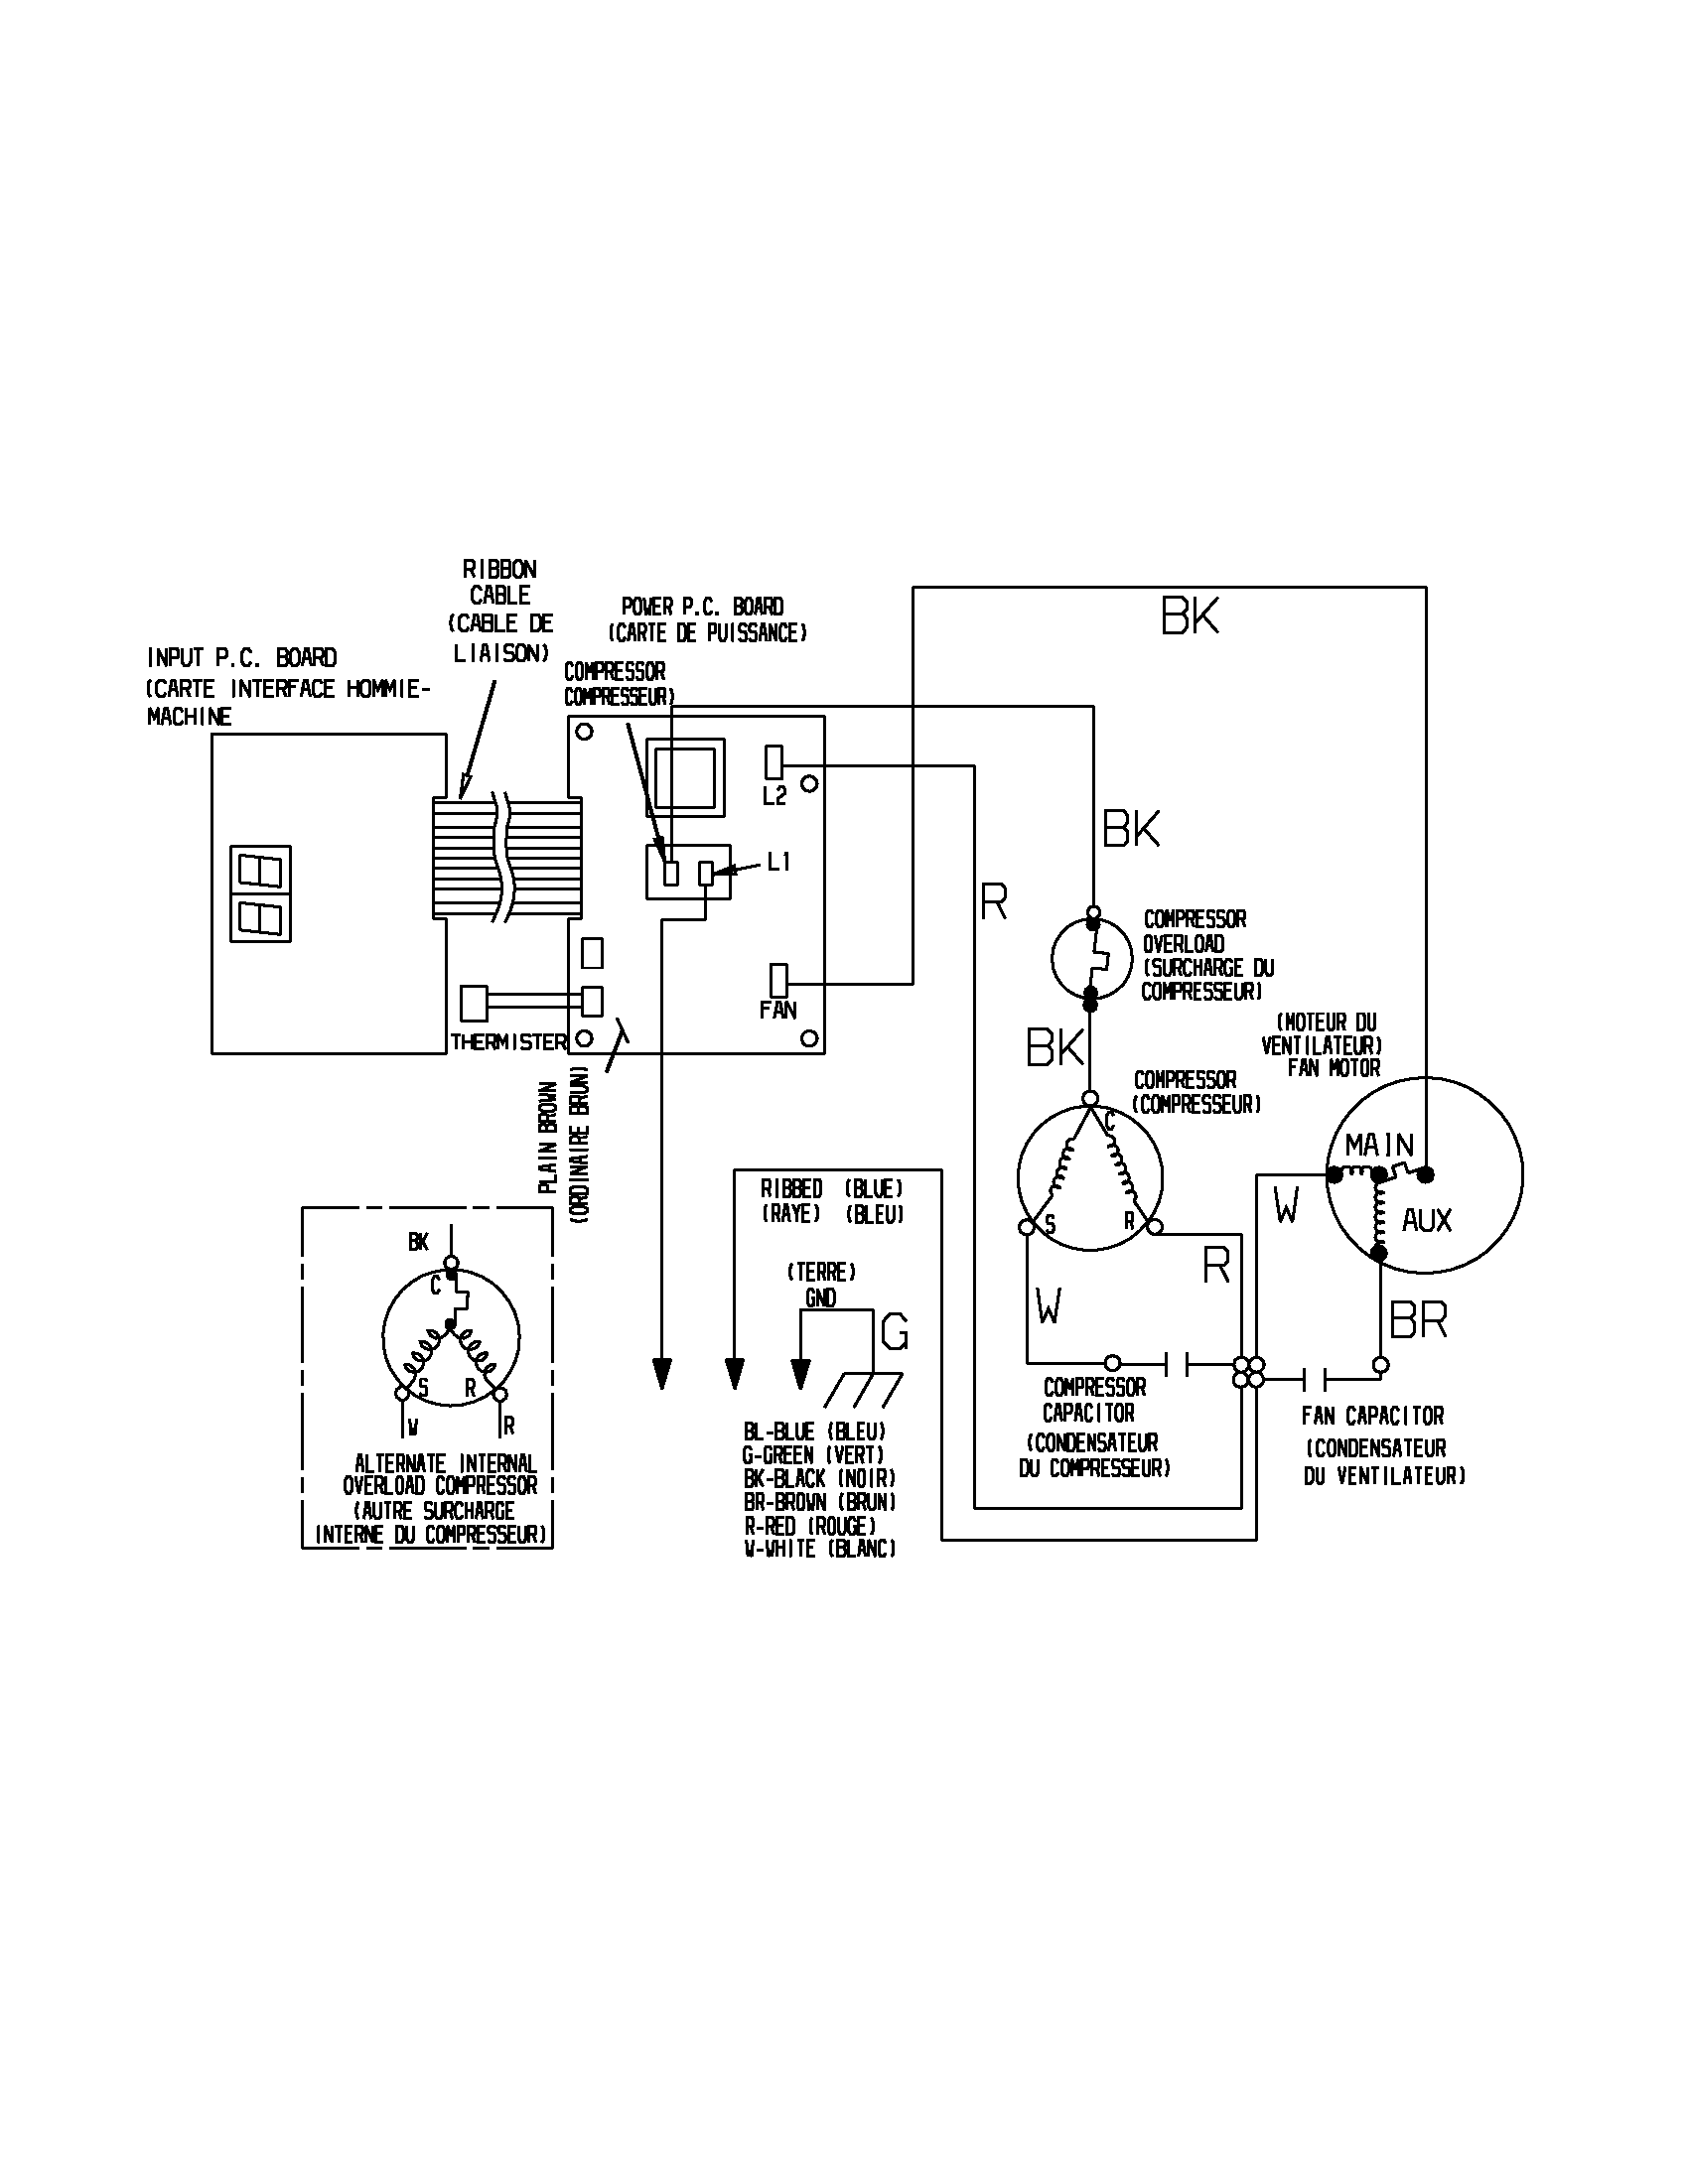 Kenmore air conditioner wiring diagram wiring diagram